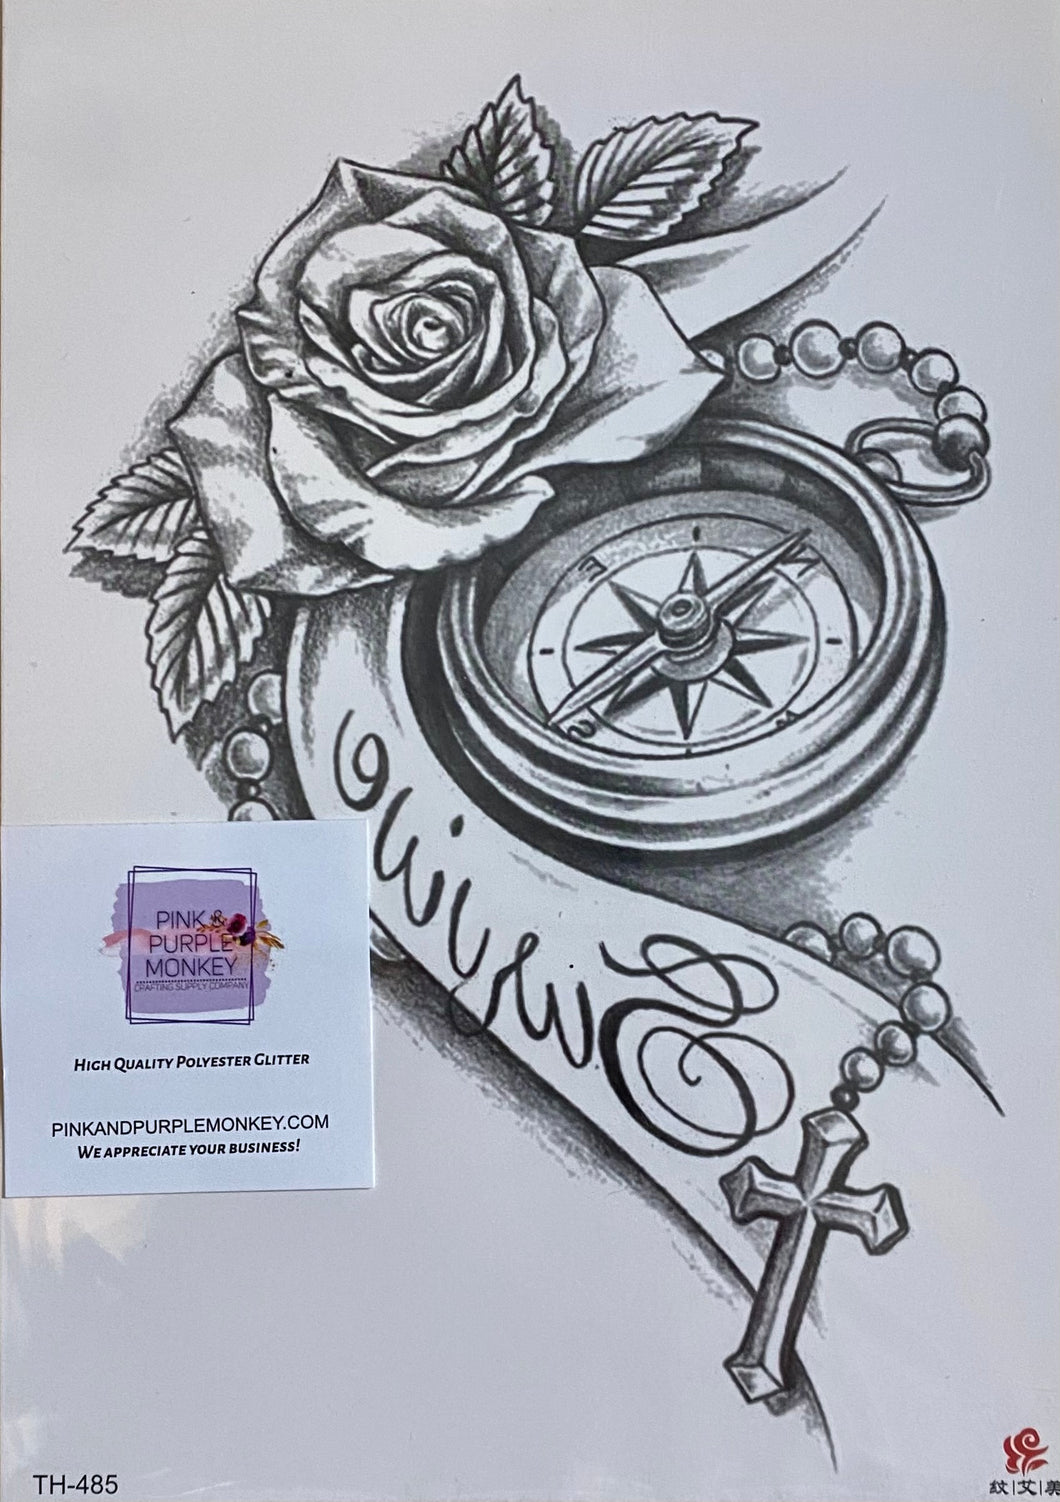 Black & White Compass & Rose (survive) Tattoo - 8 x 5